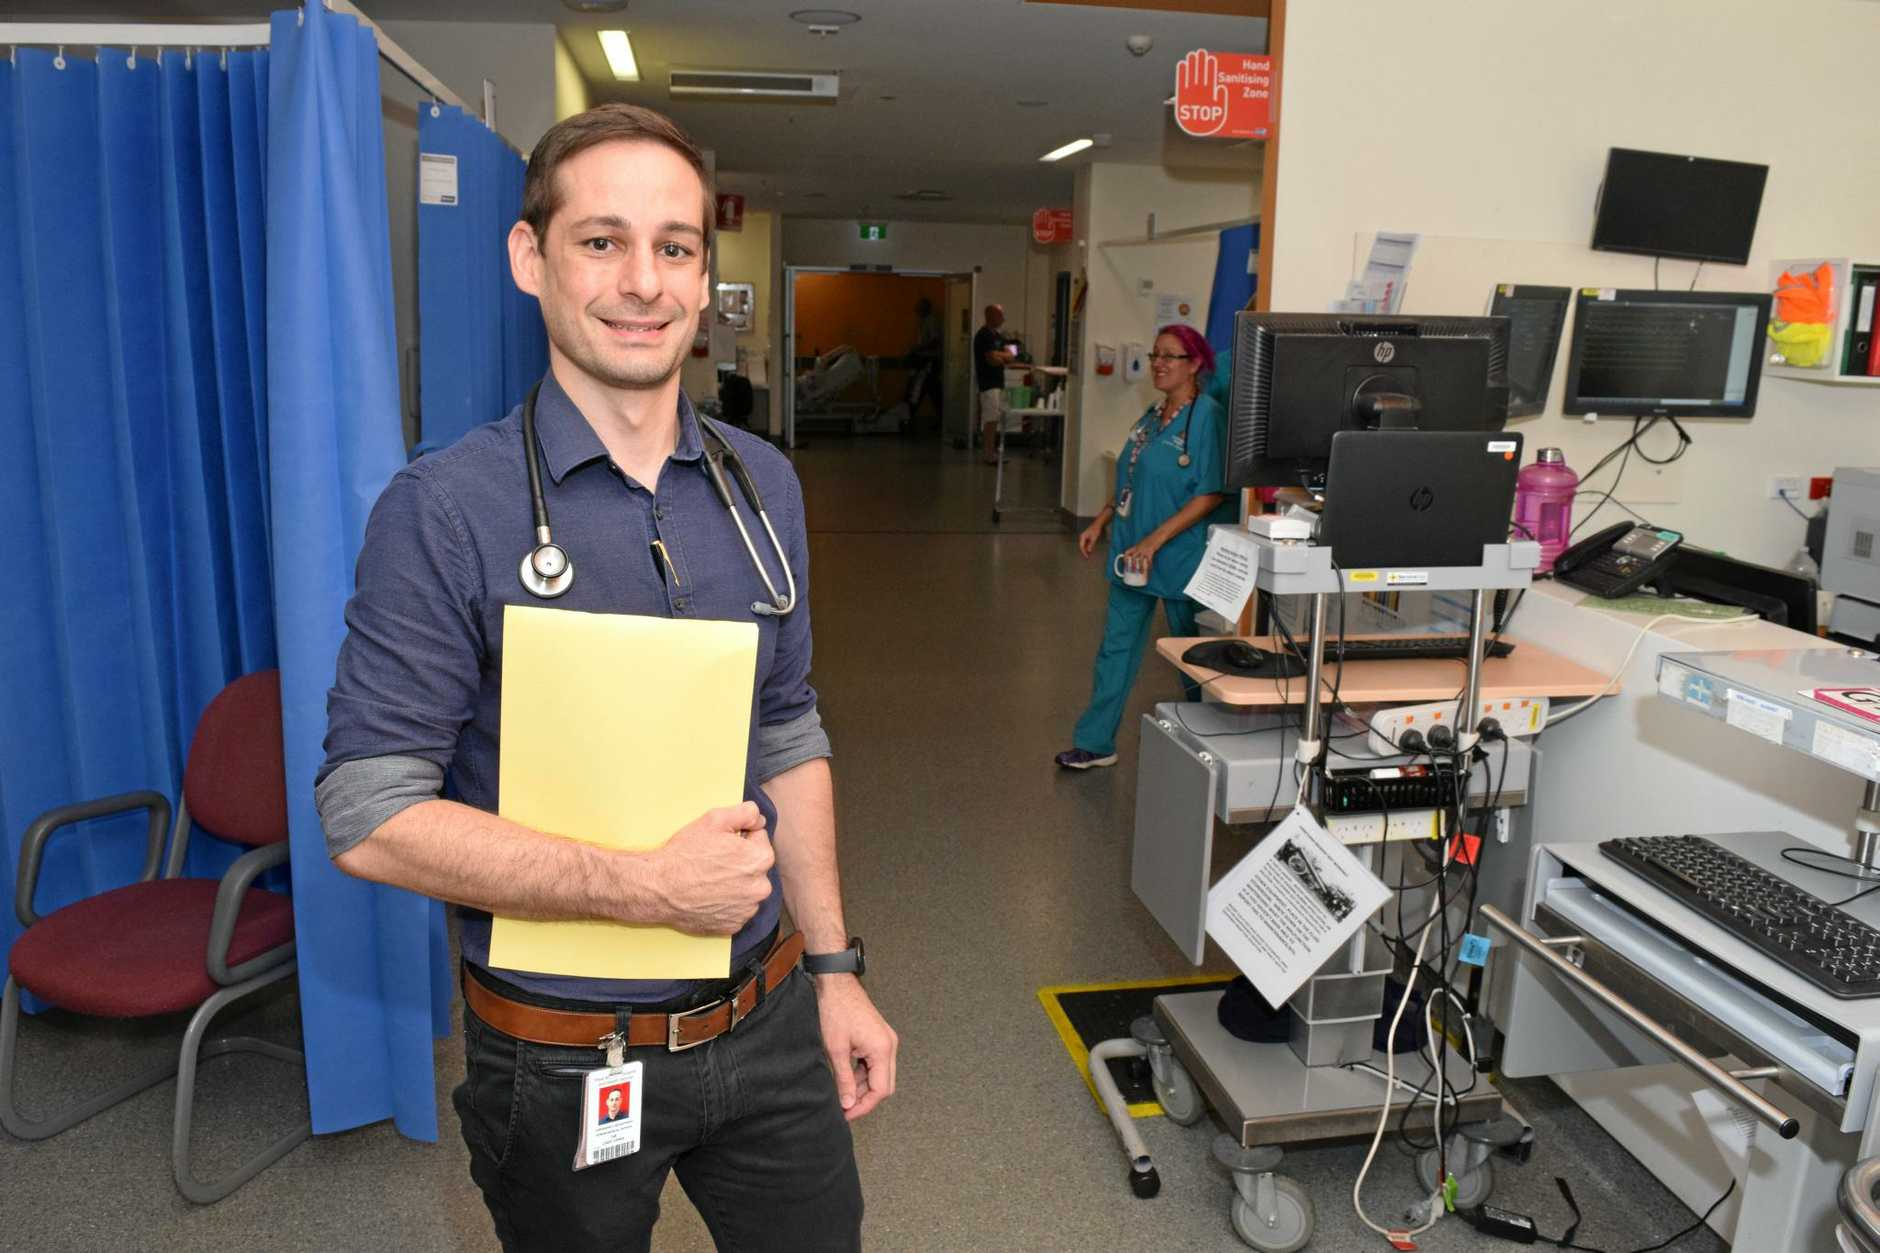 Ipswich Hospital's Emergency Department Director, Dr Cade Grima.